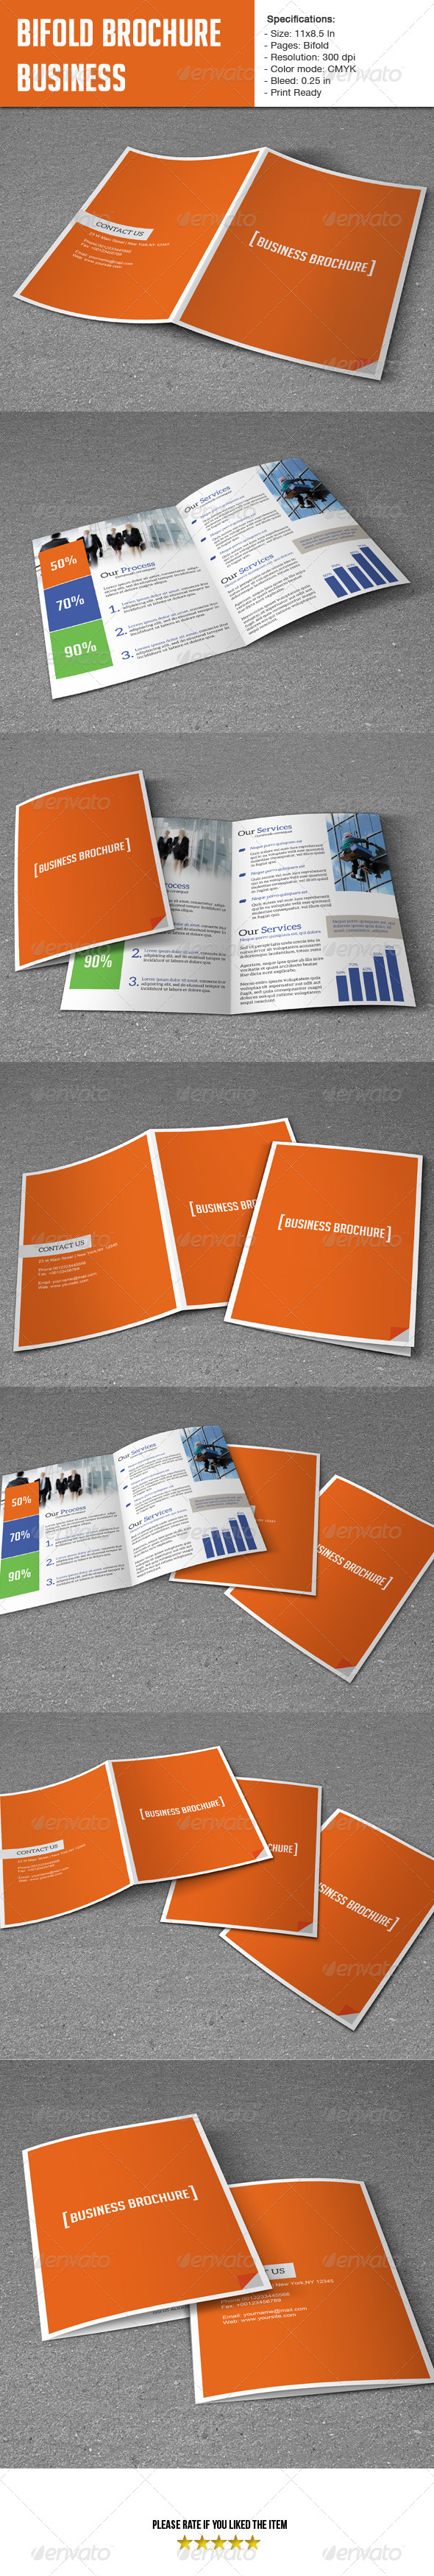 GraphicRiver Bifold Template- Business 6538359